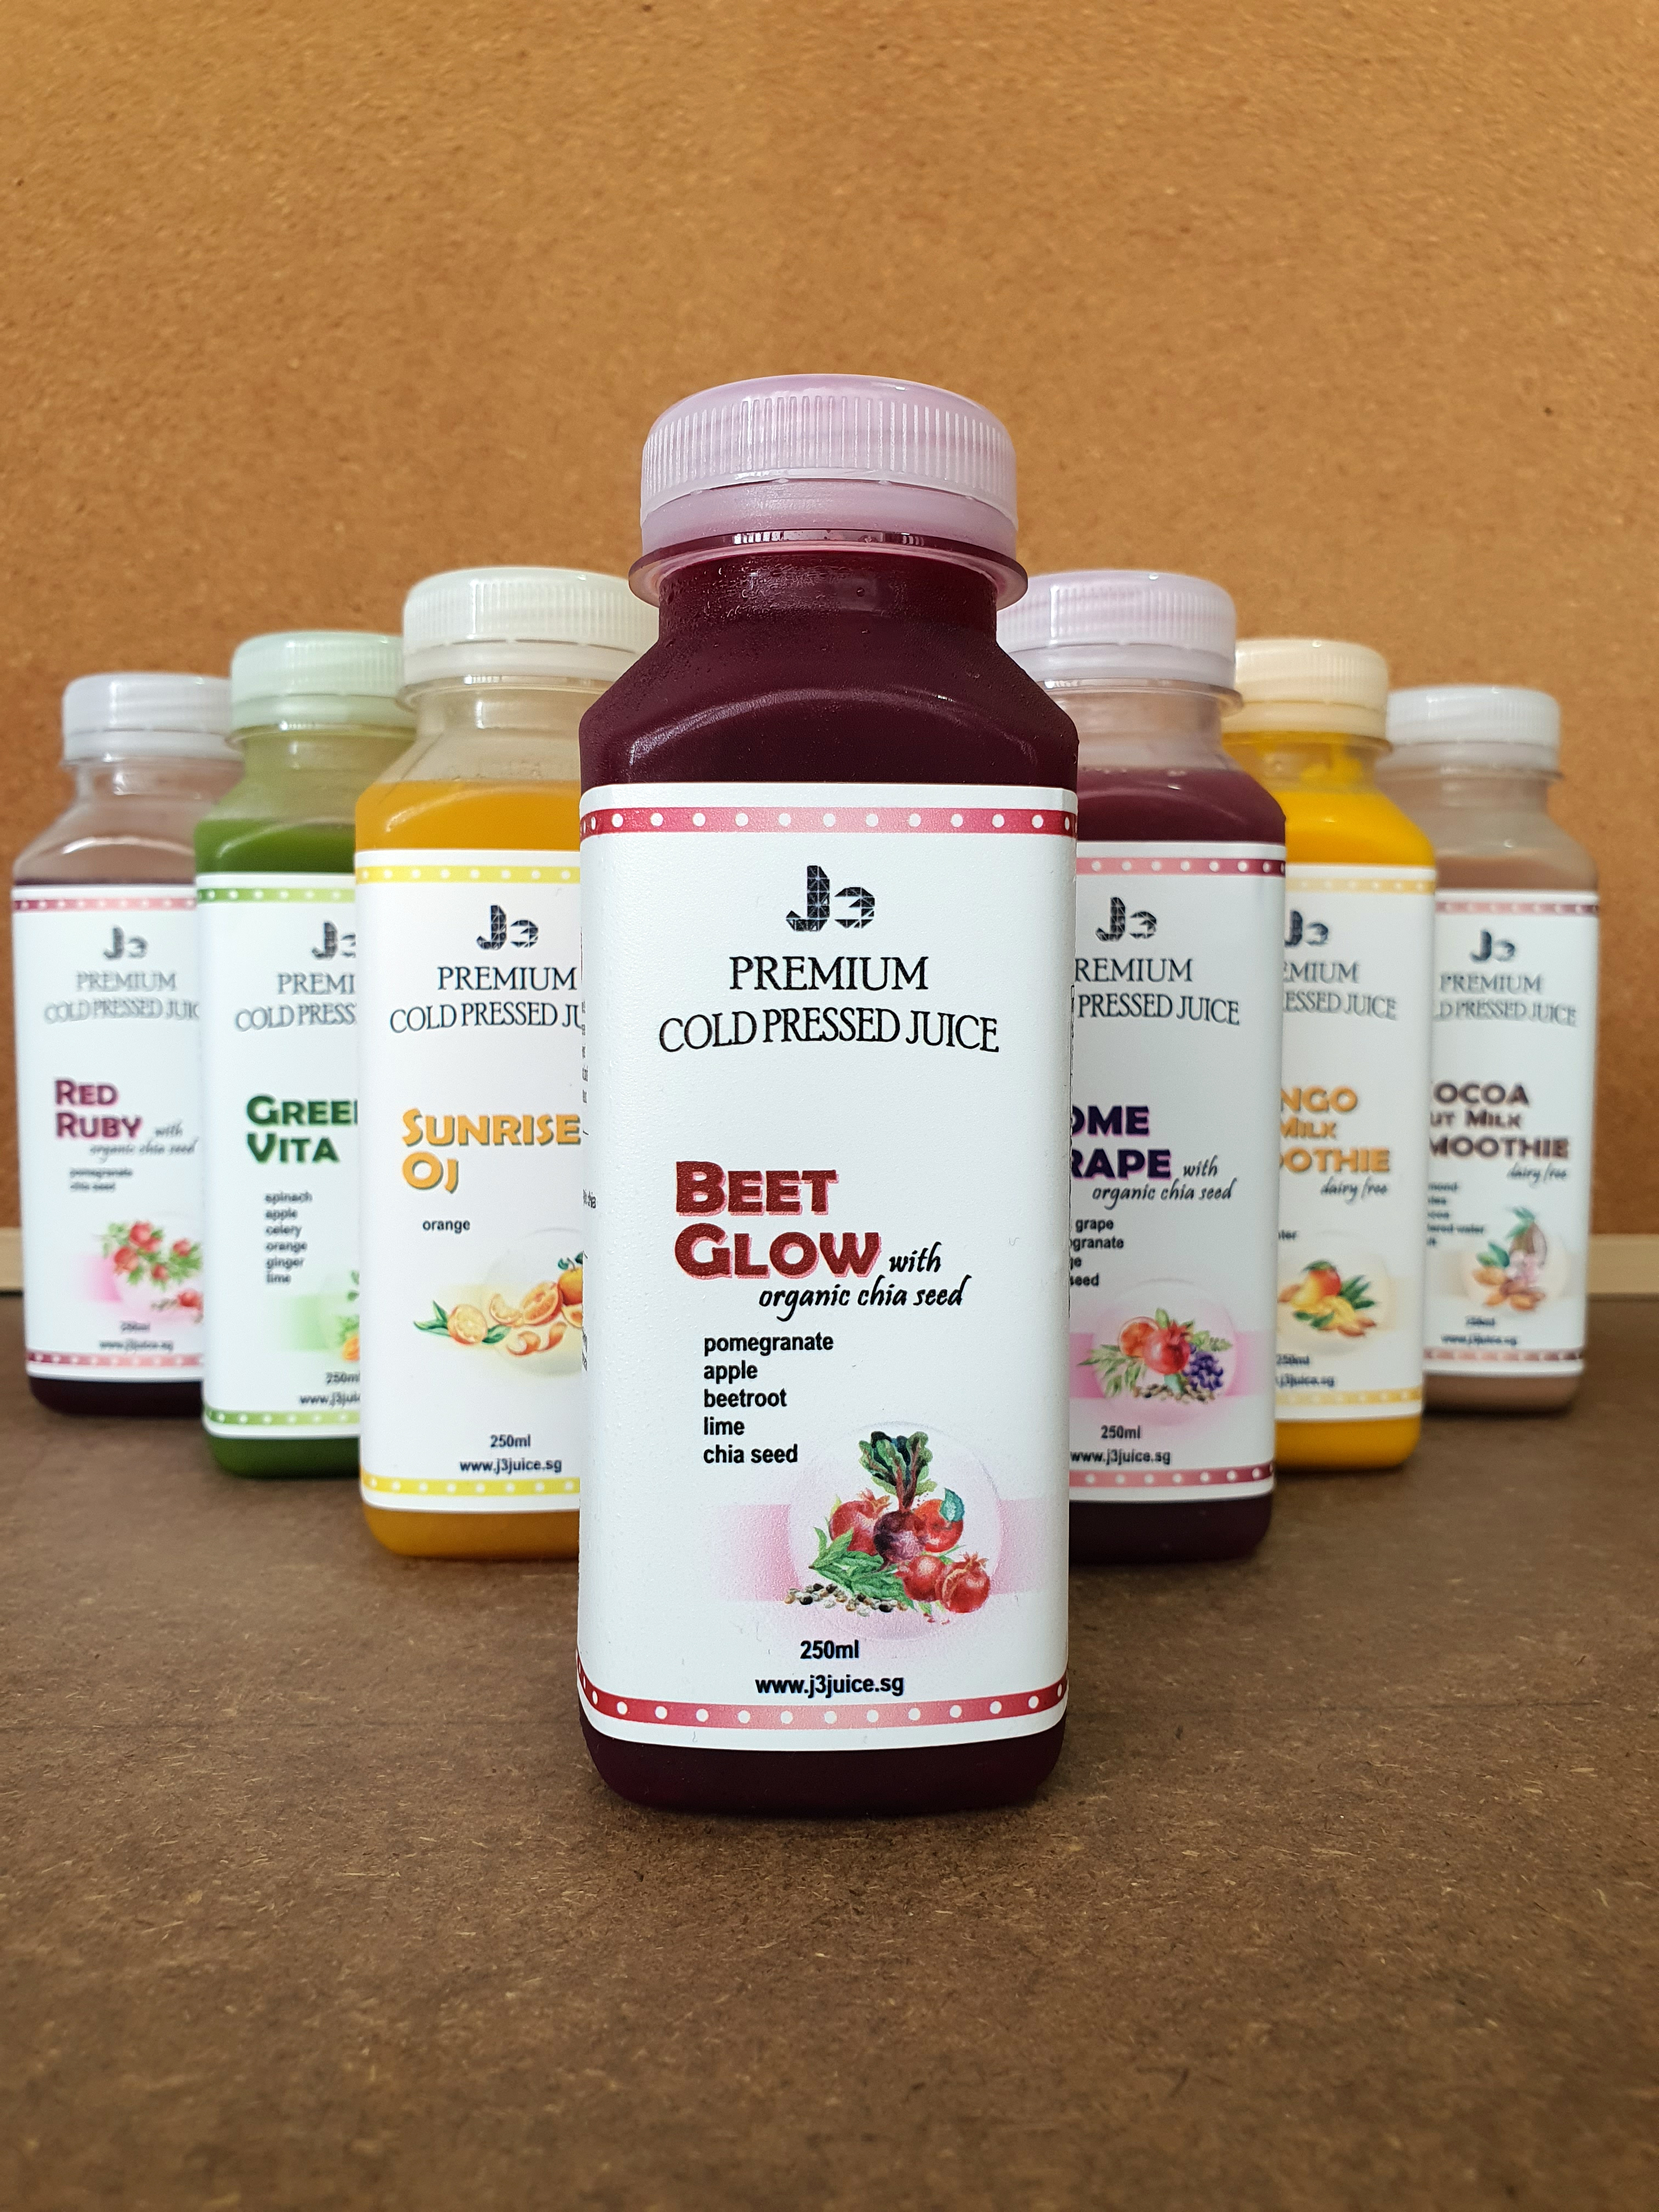 About J3 Cold Pressed Juice